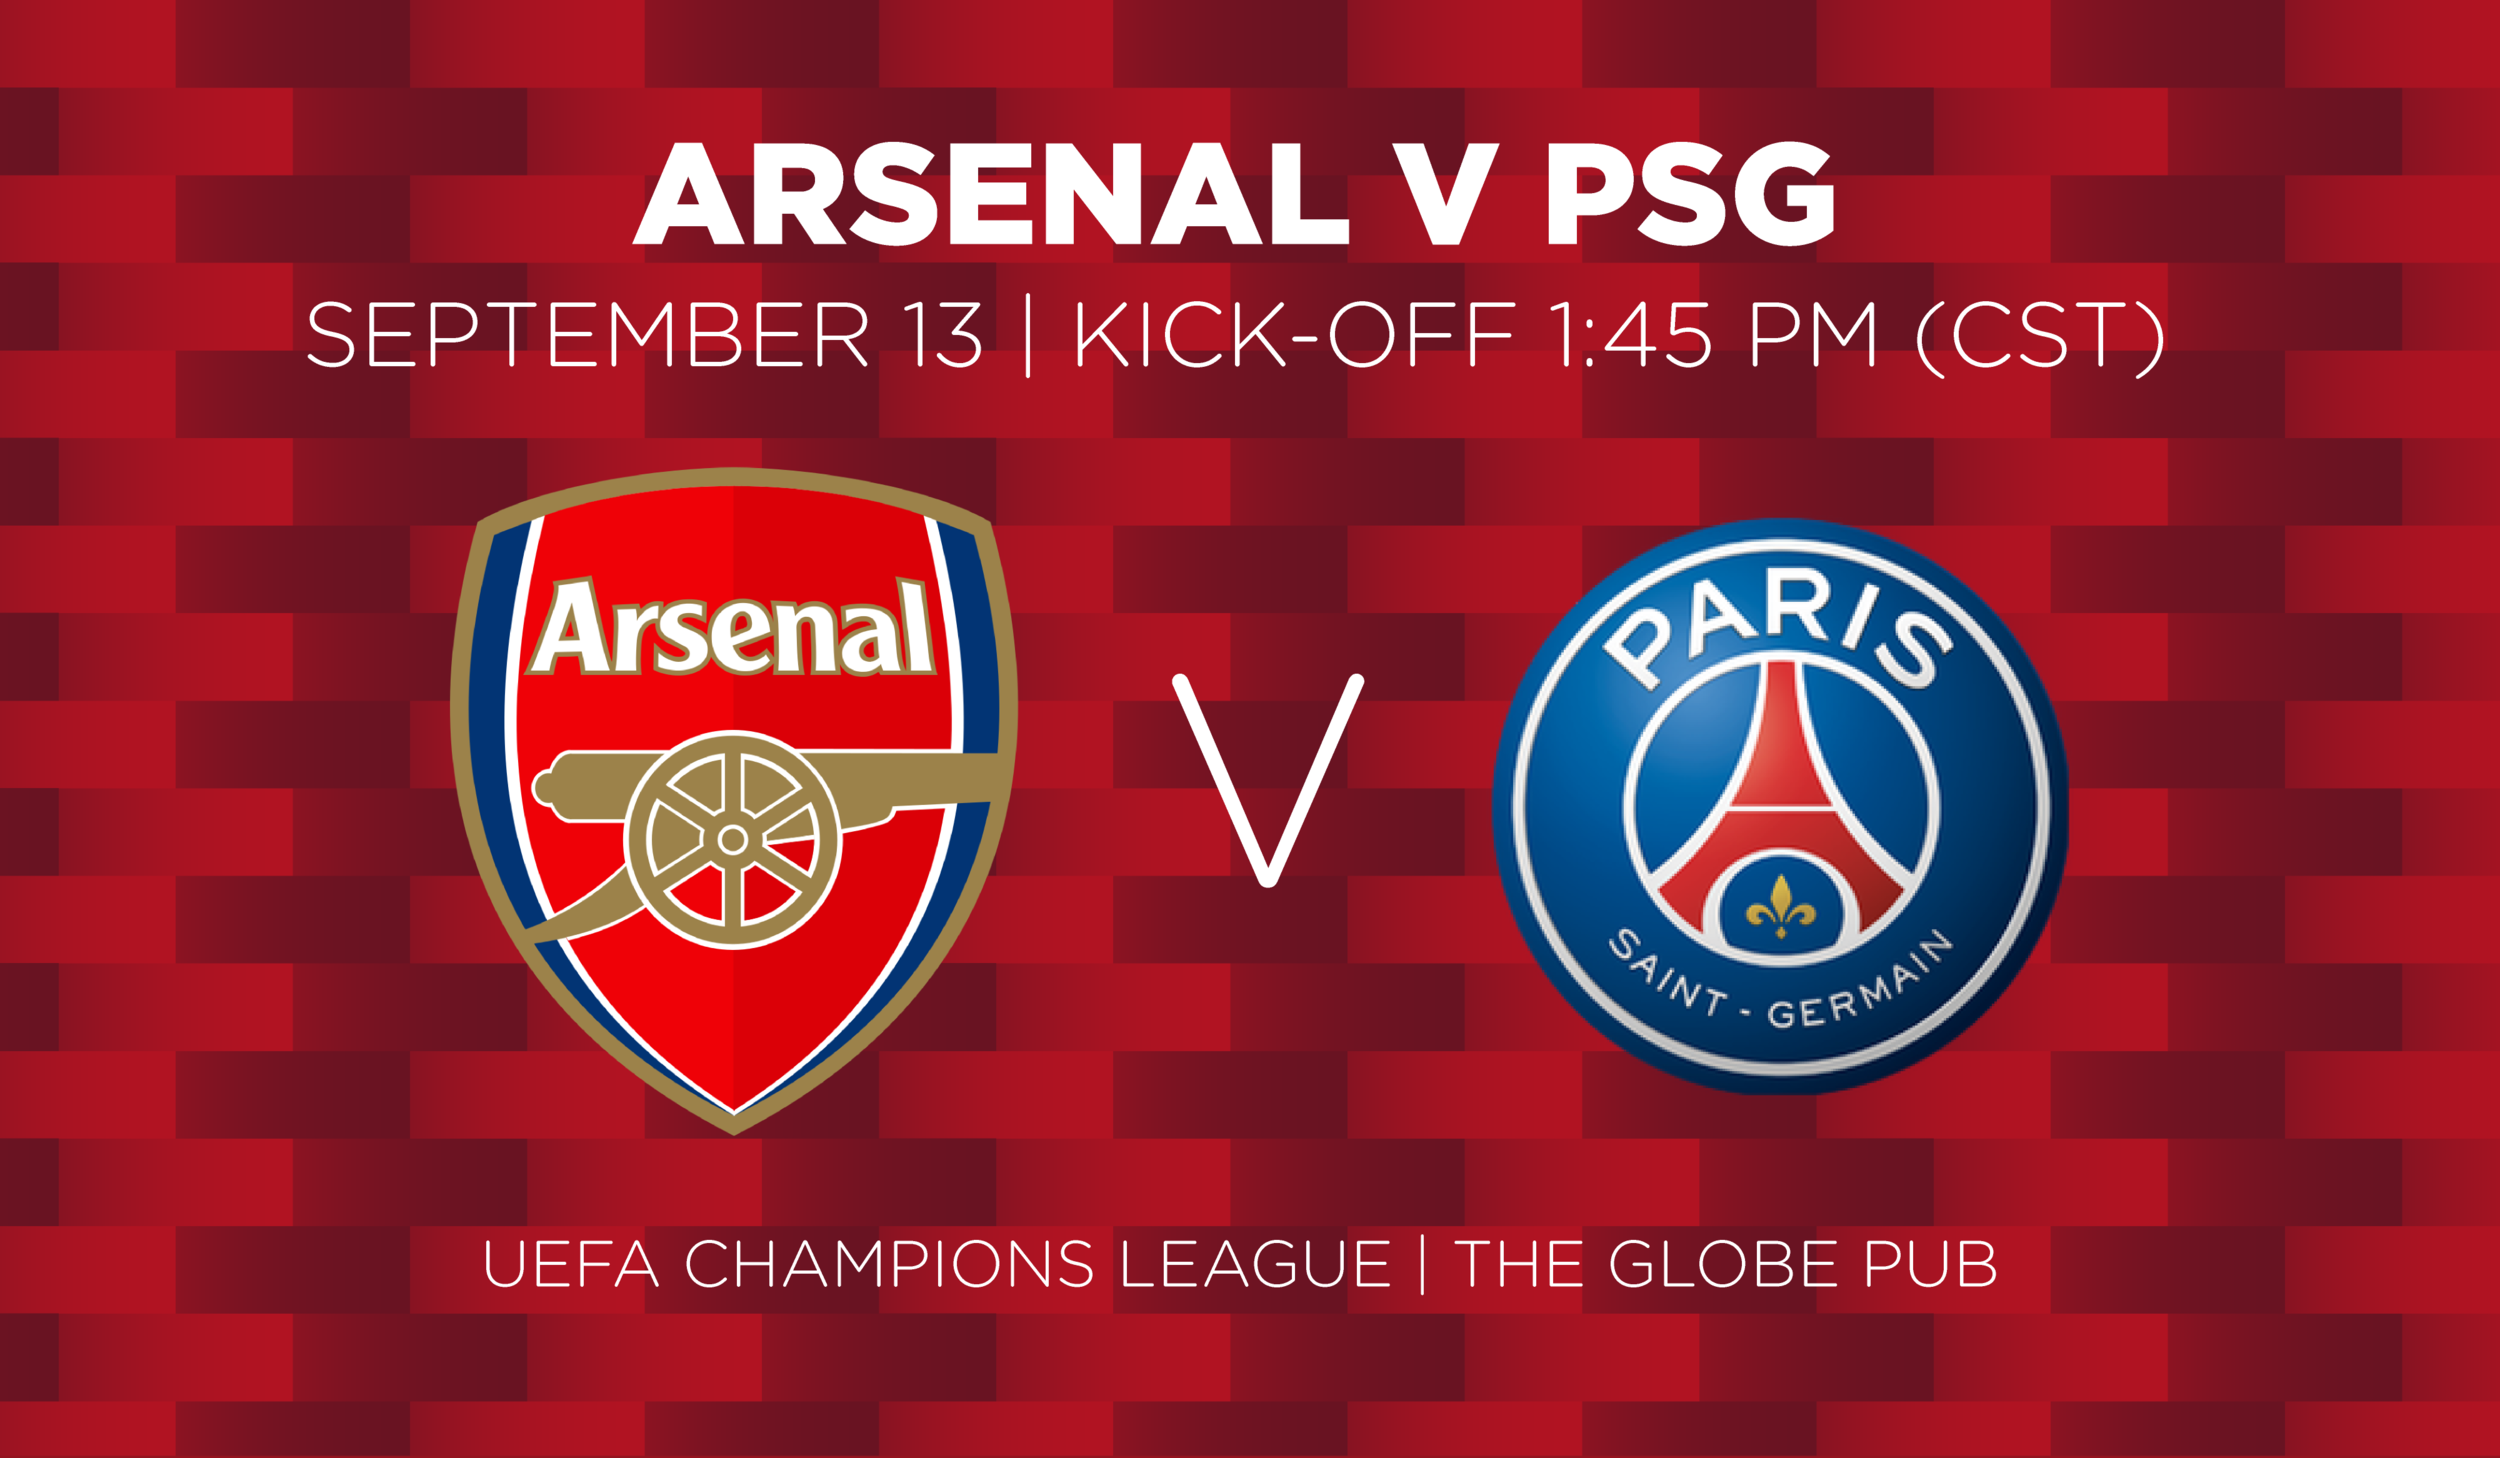 Arsenal V PSG